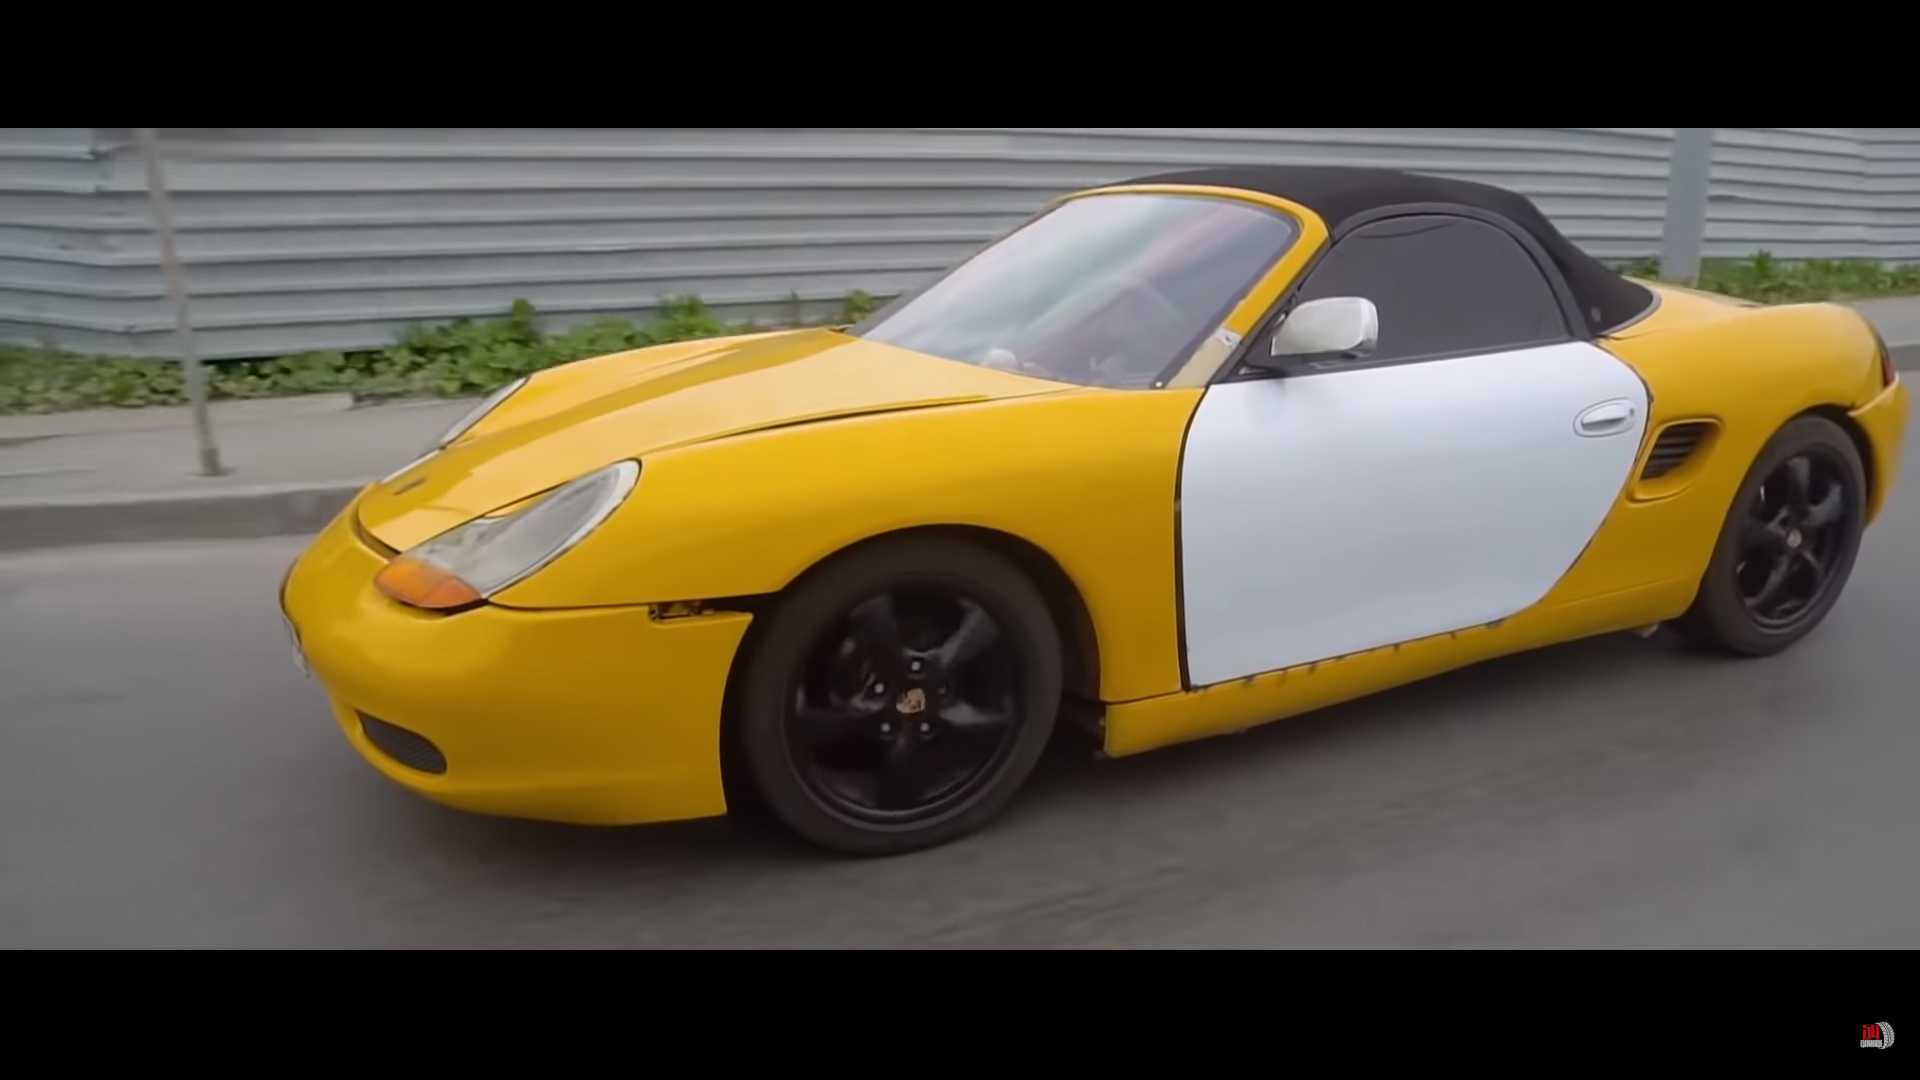 This Yellow Porsche Boxster Is Actually A ... Lada?